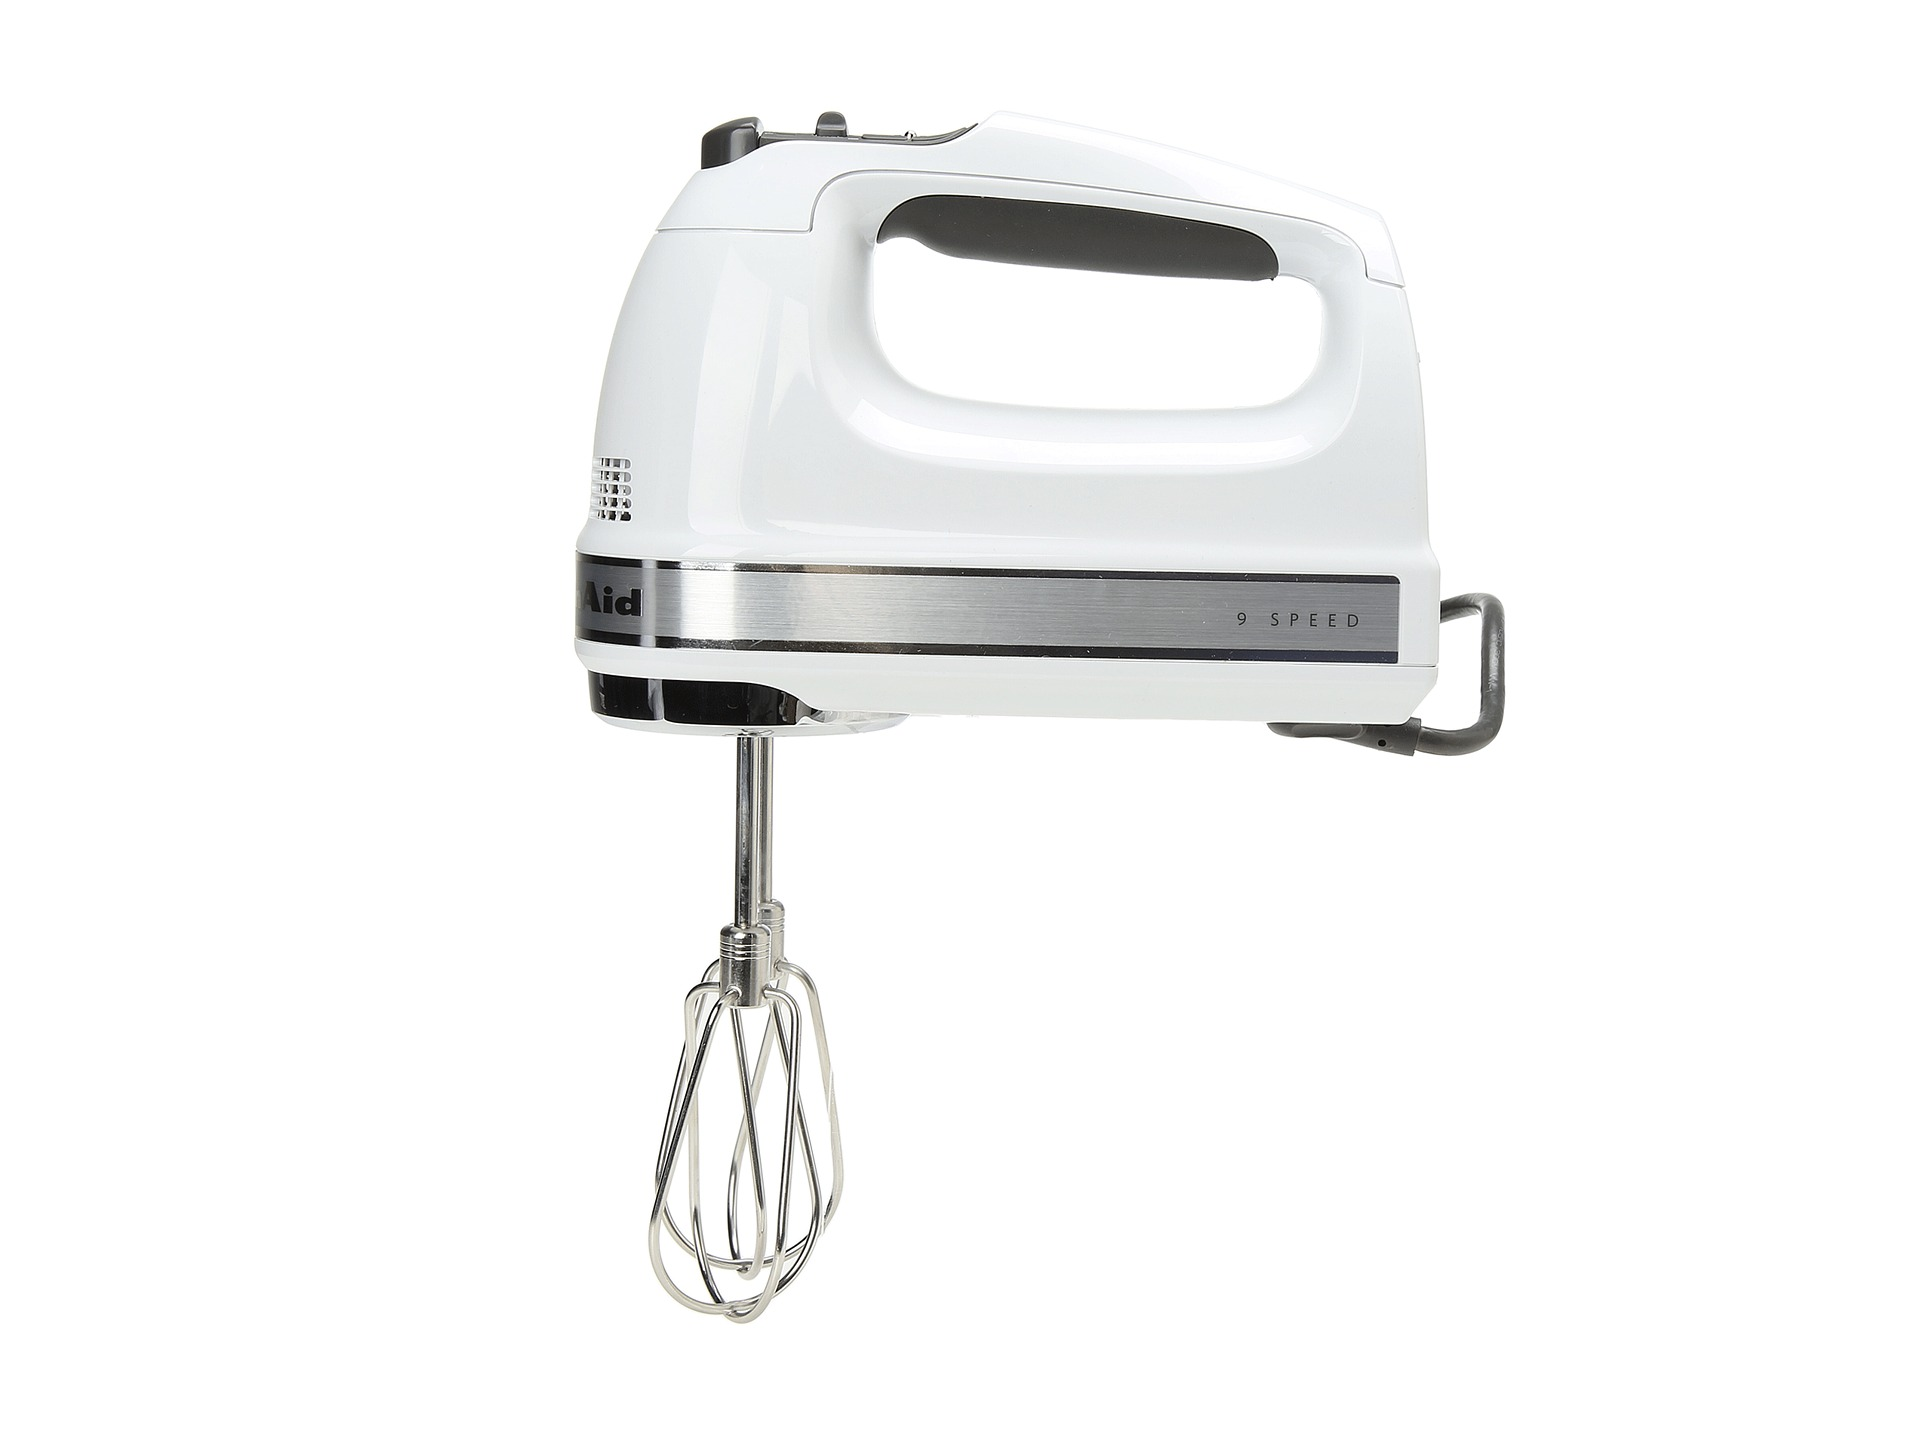 kitchen aid hand mixer rectangle table and chairs kitchenaid khm926 9 speed shipped free at zappos